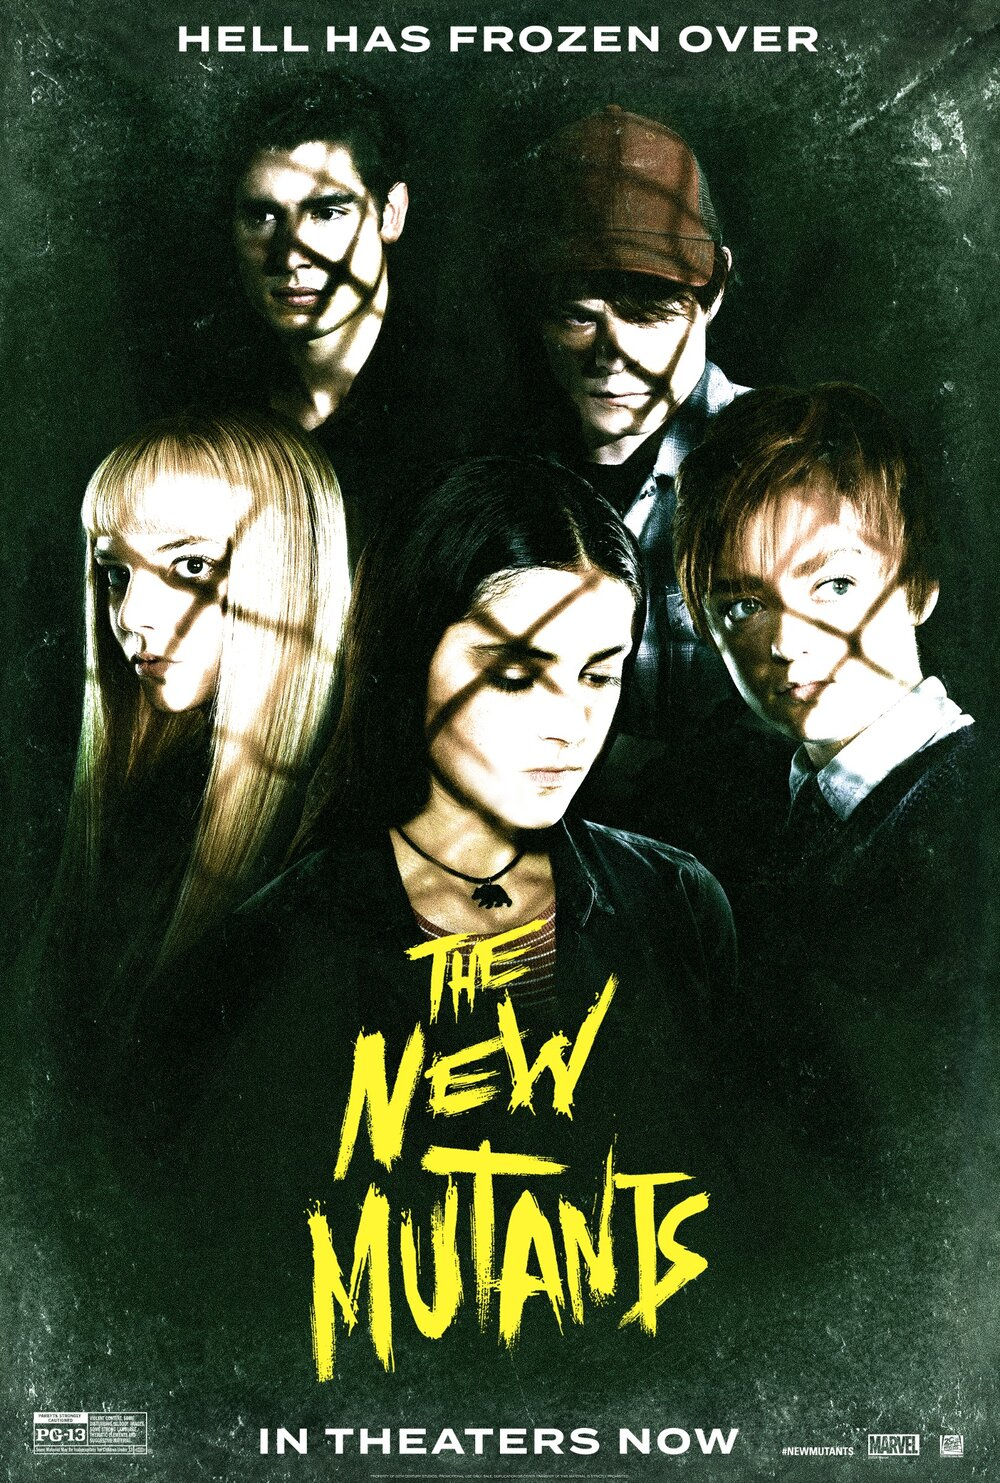 chilling-new-clip-for-the-new-mutants-and-hell-has-frozen-over-in-poster-art3